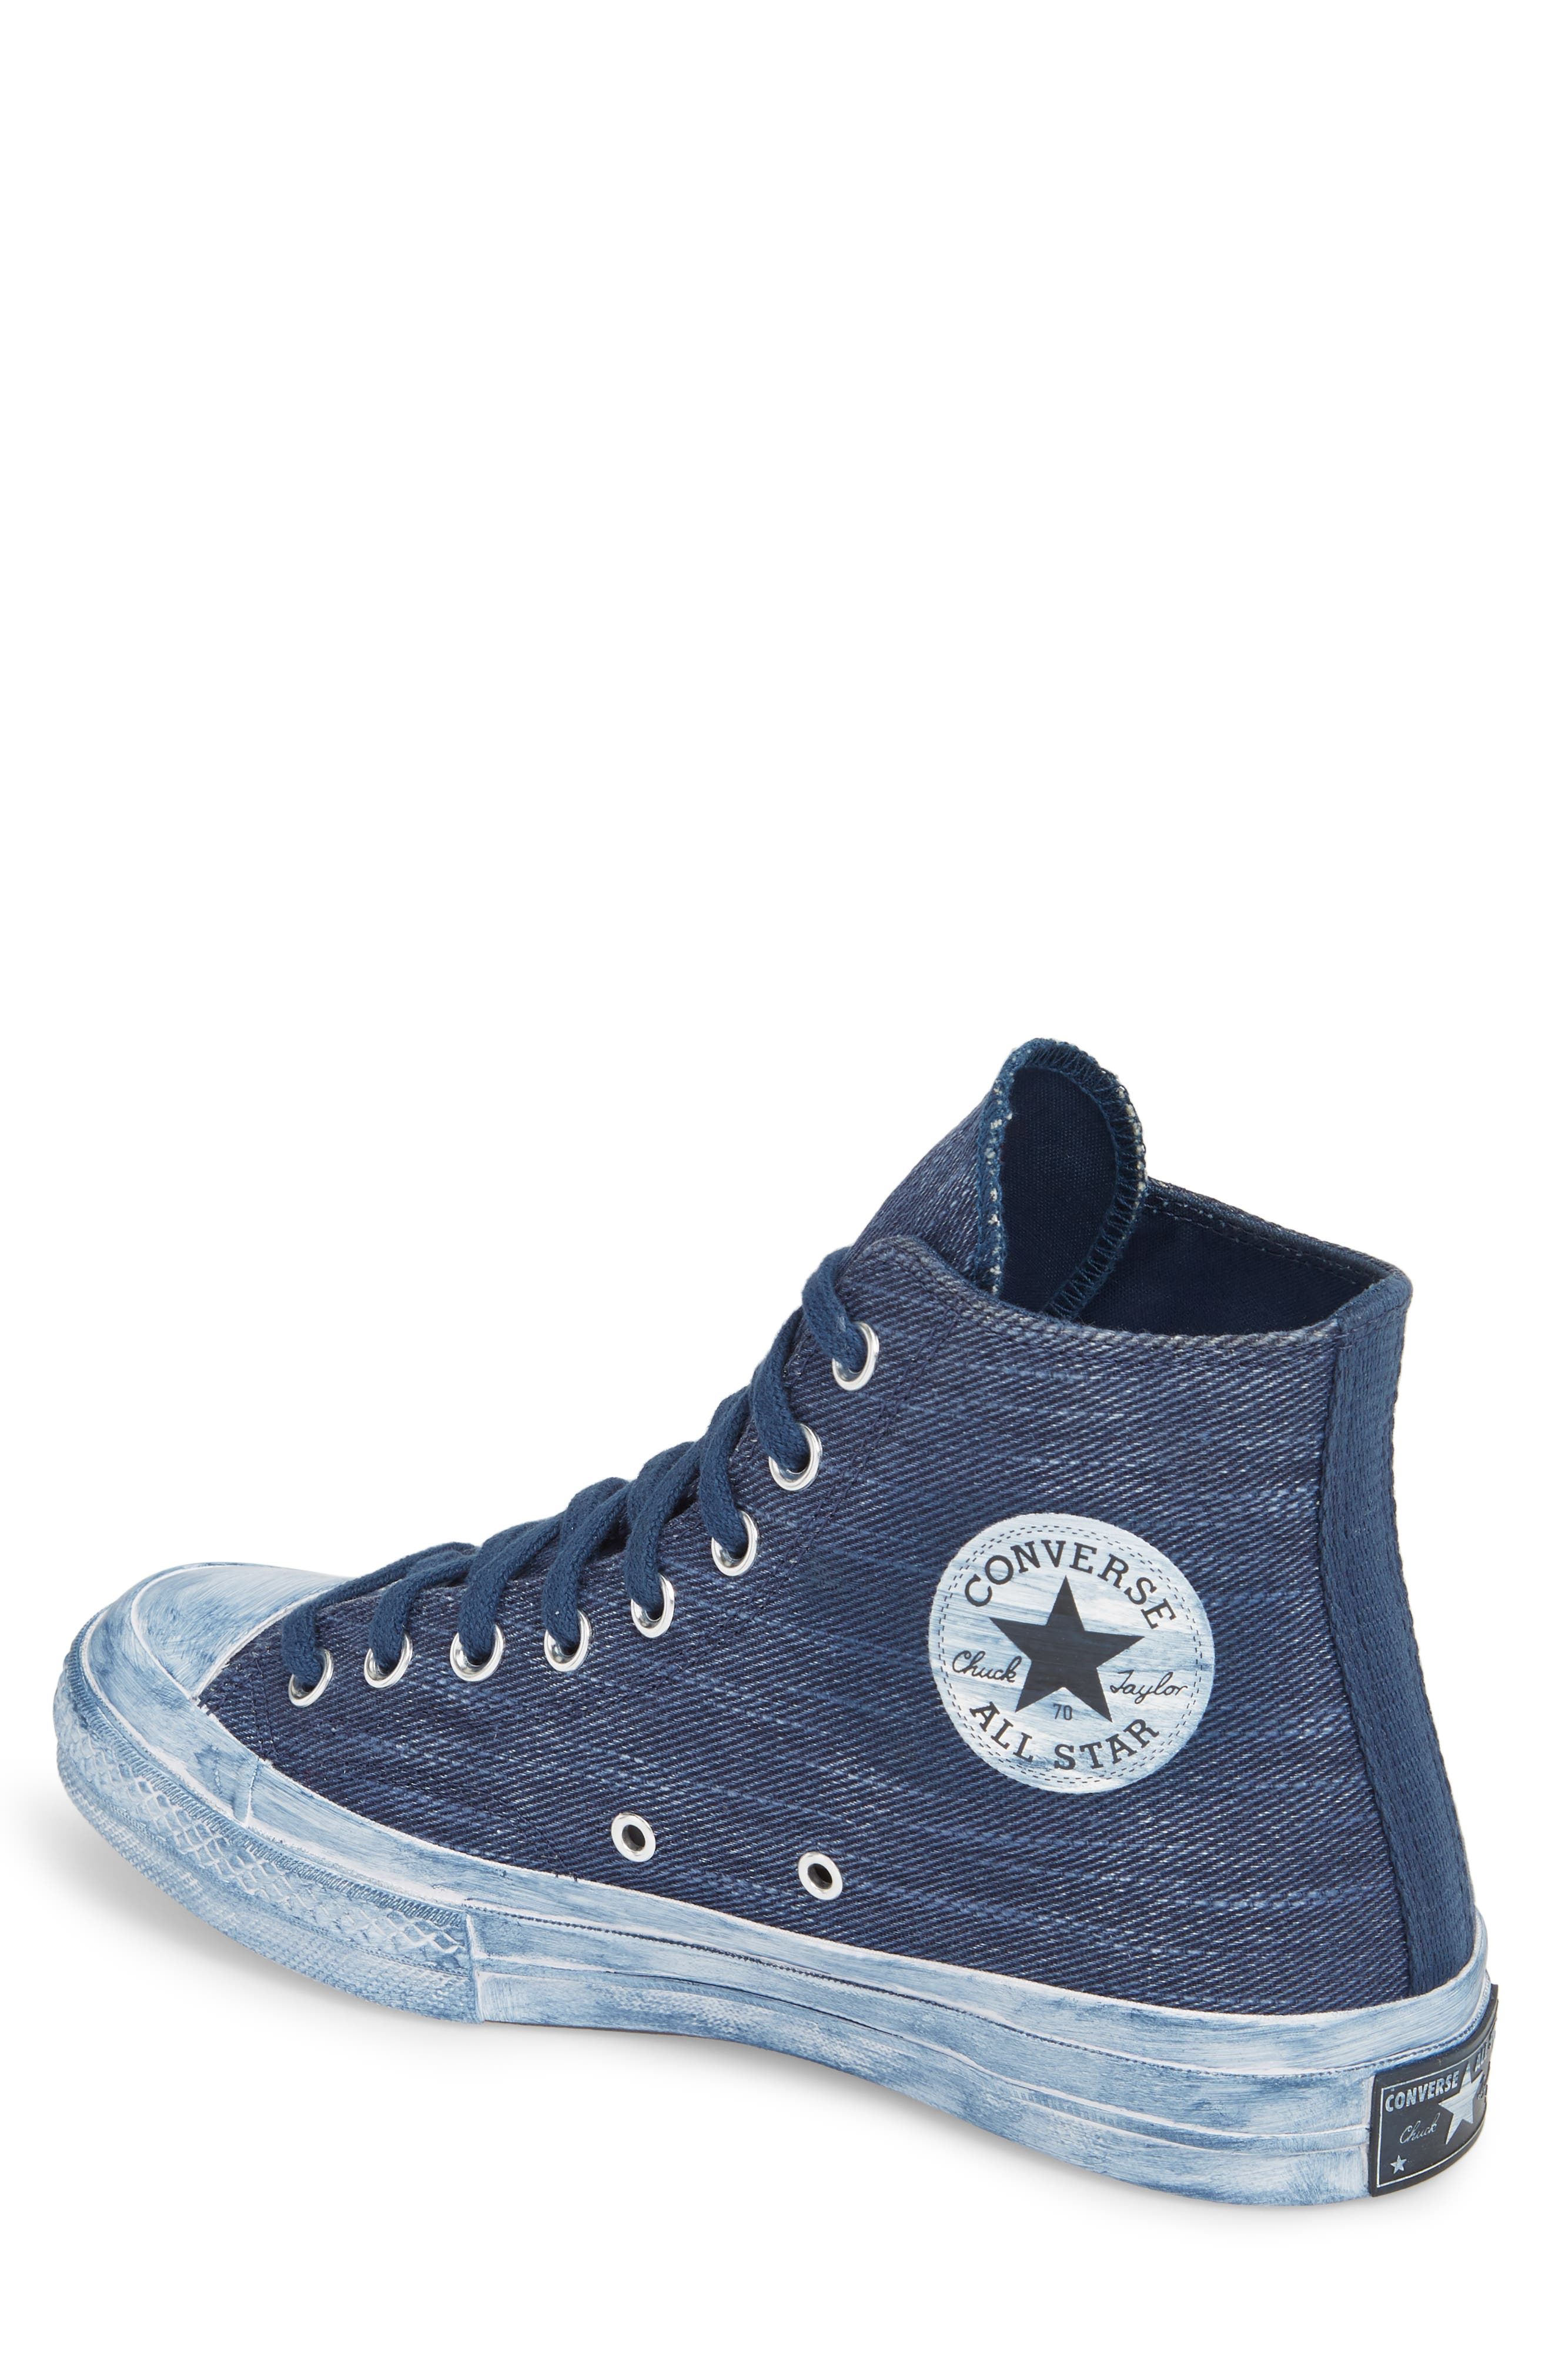 Chuck Taylor<sup>®</sup> All Star<sup>®</sup> Overdyed Linen High Top Sneaker,                             Alternate thumbnail 2, color,                             Navy